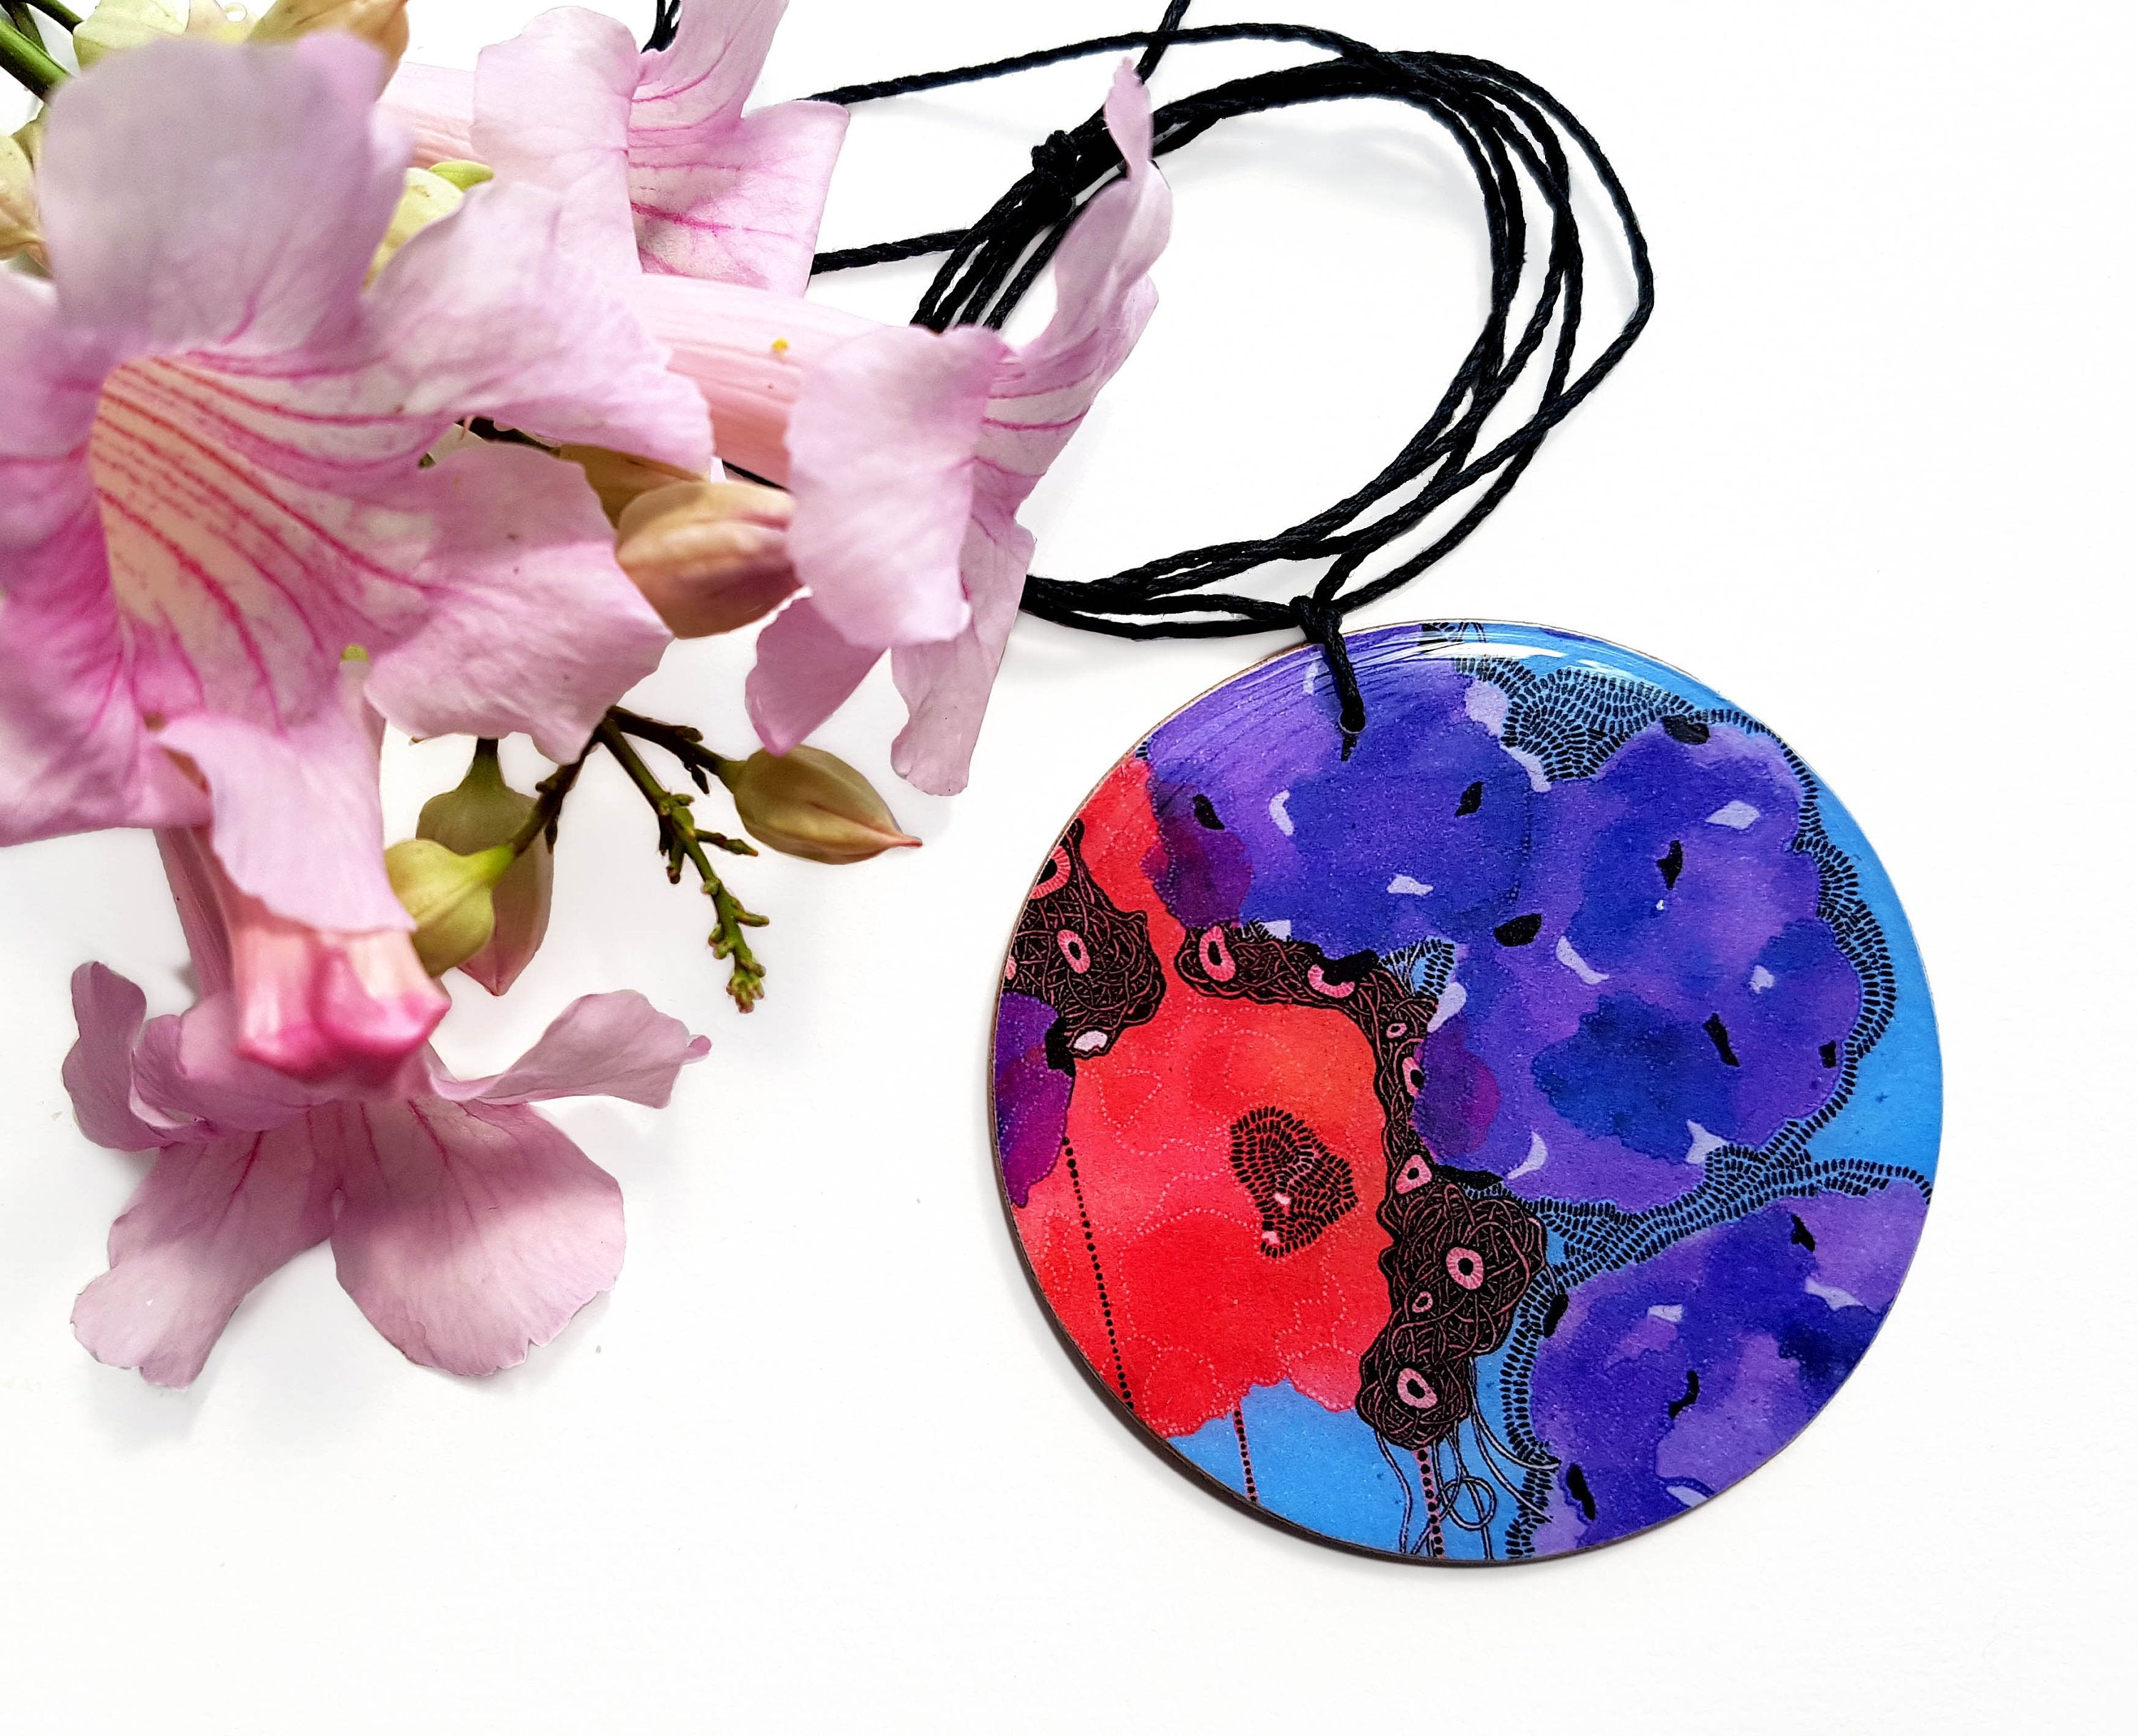 disc pendant necklace in the pattern purple & red blooms